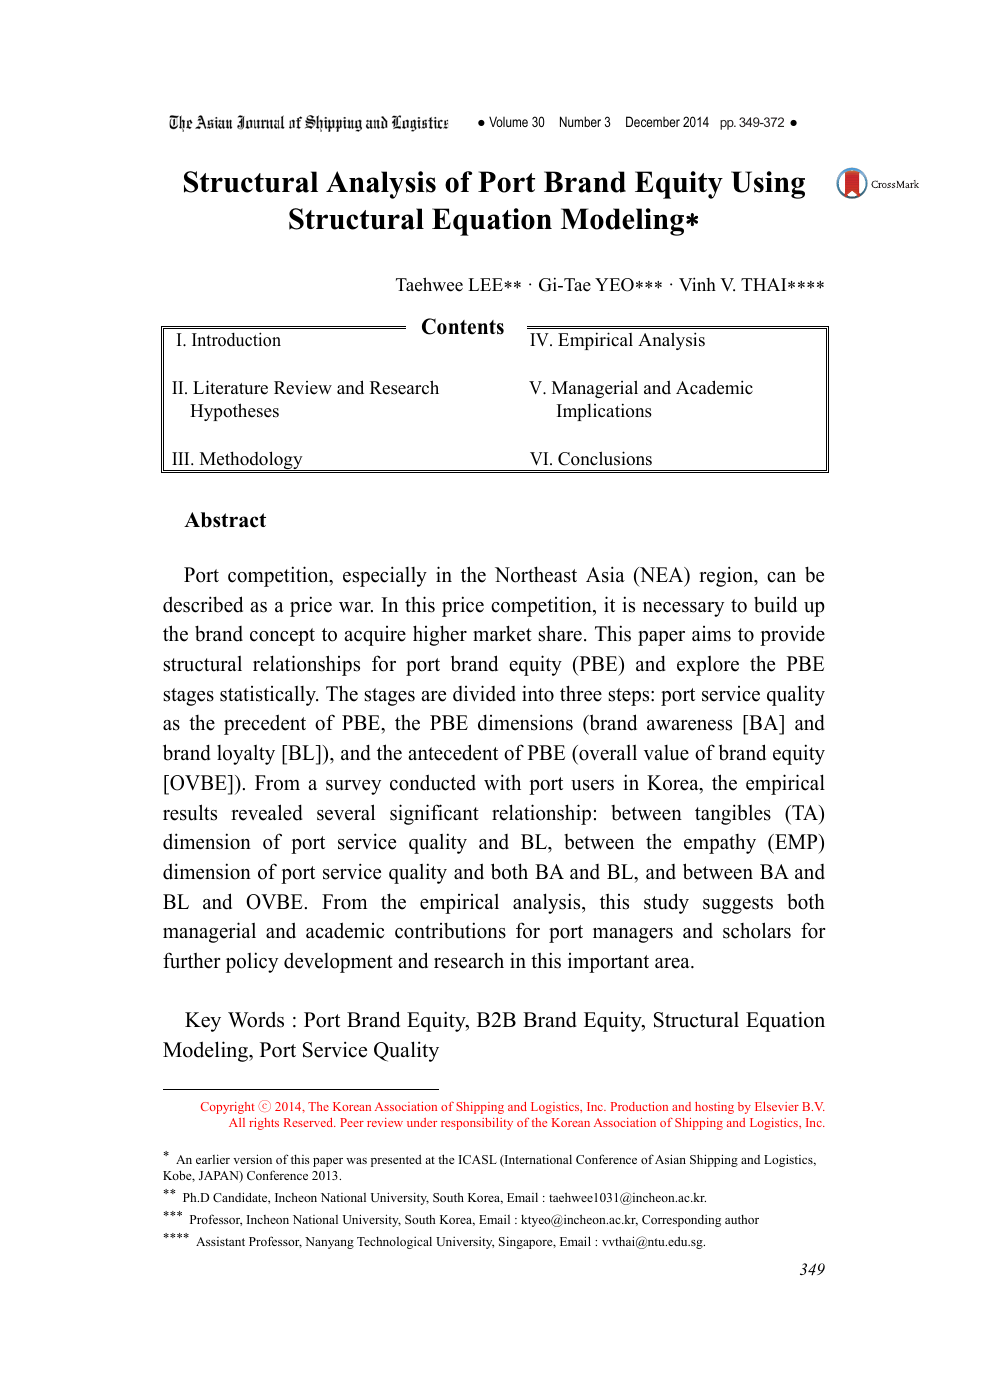 Structural Analysis of Port Brand Equity Using Structural